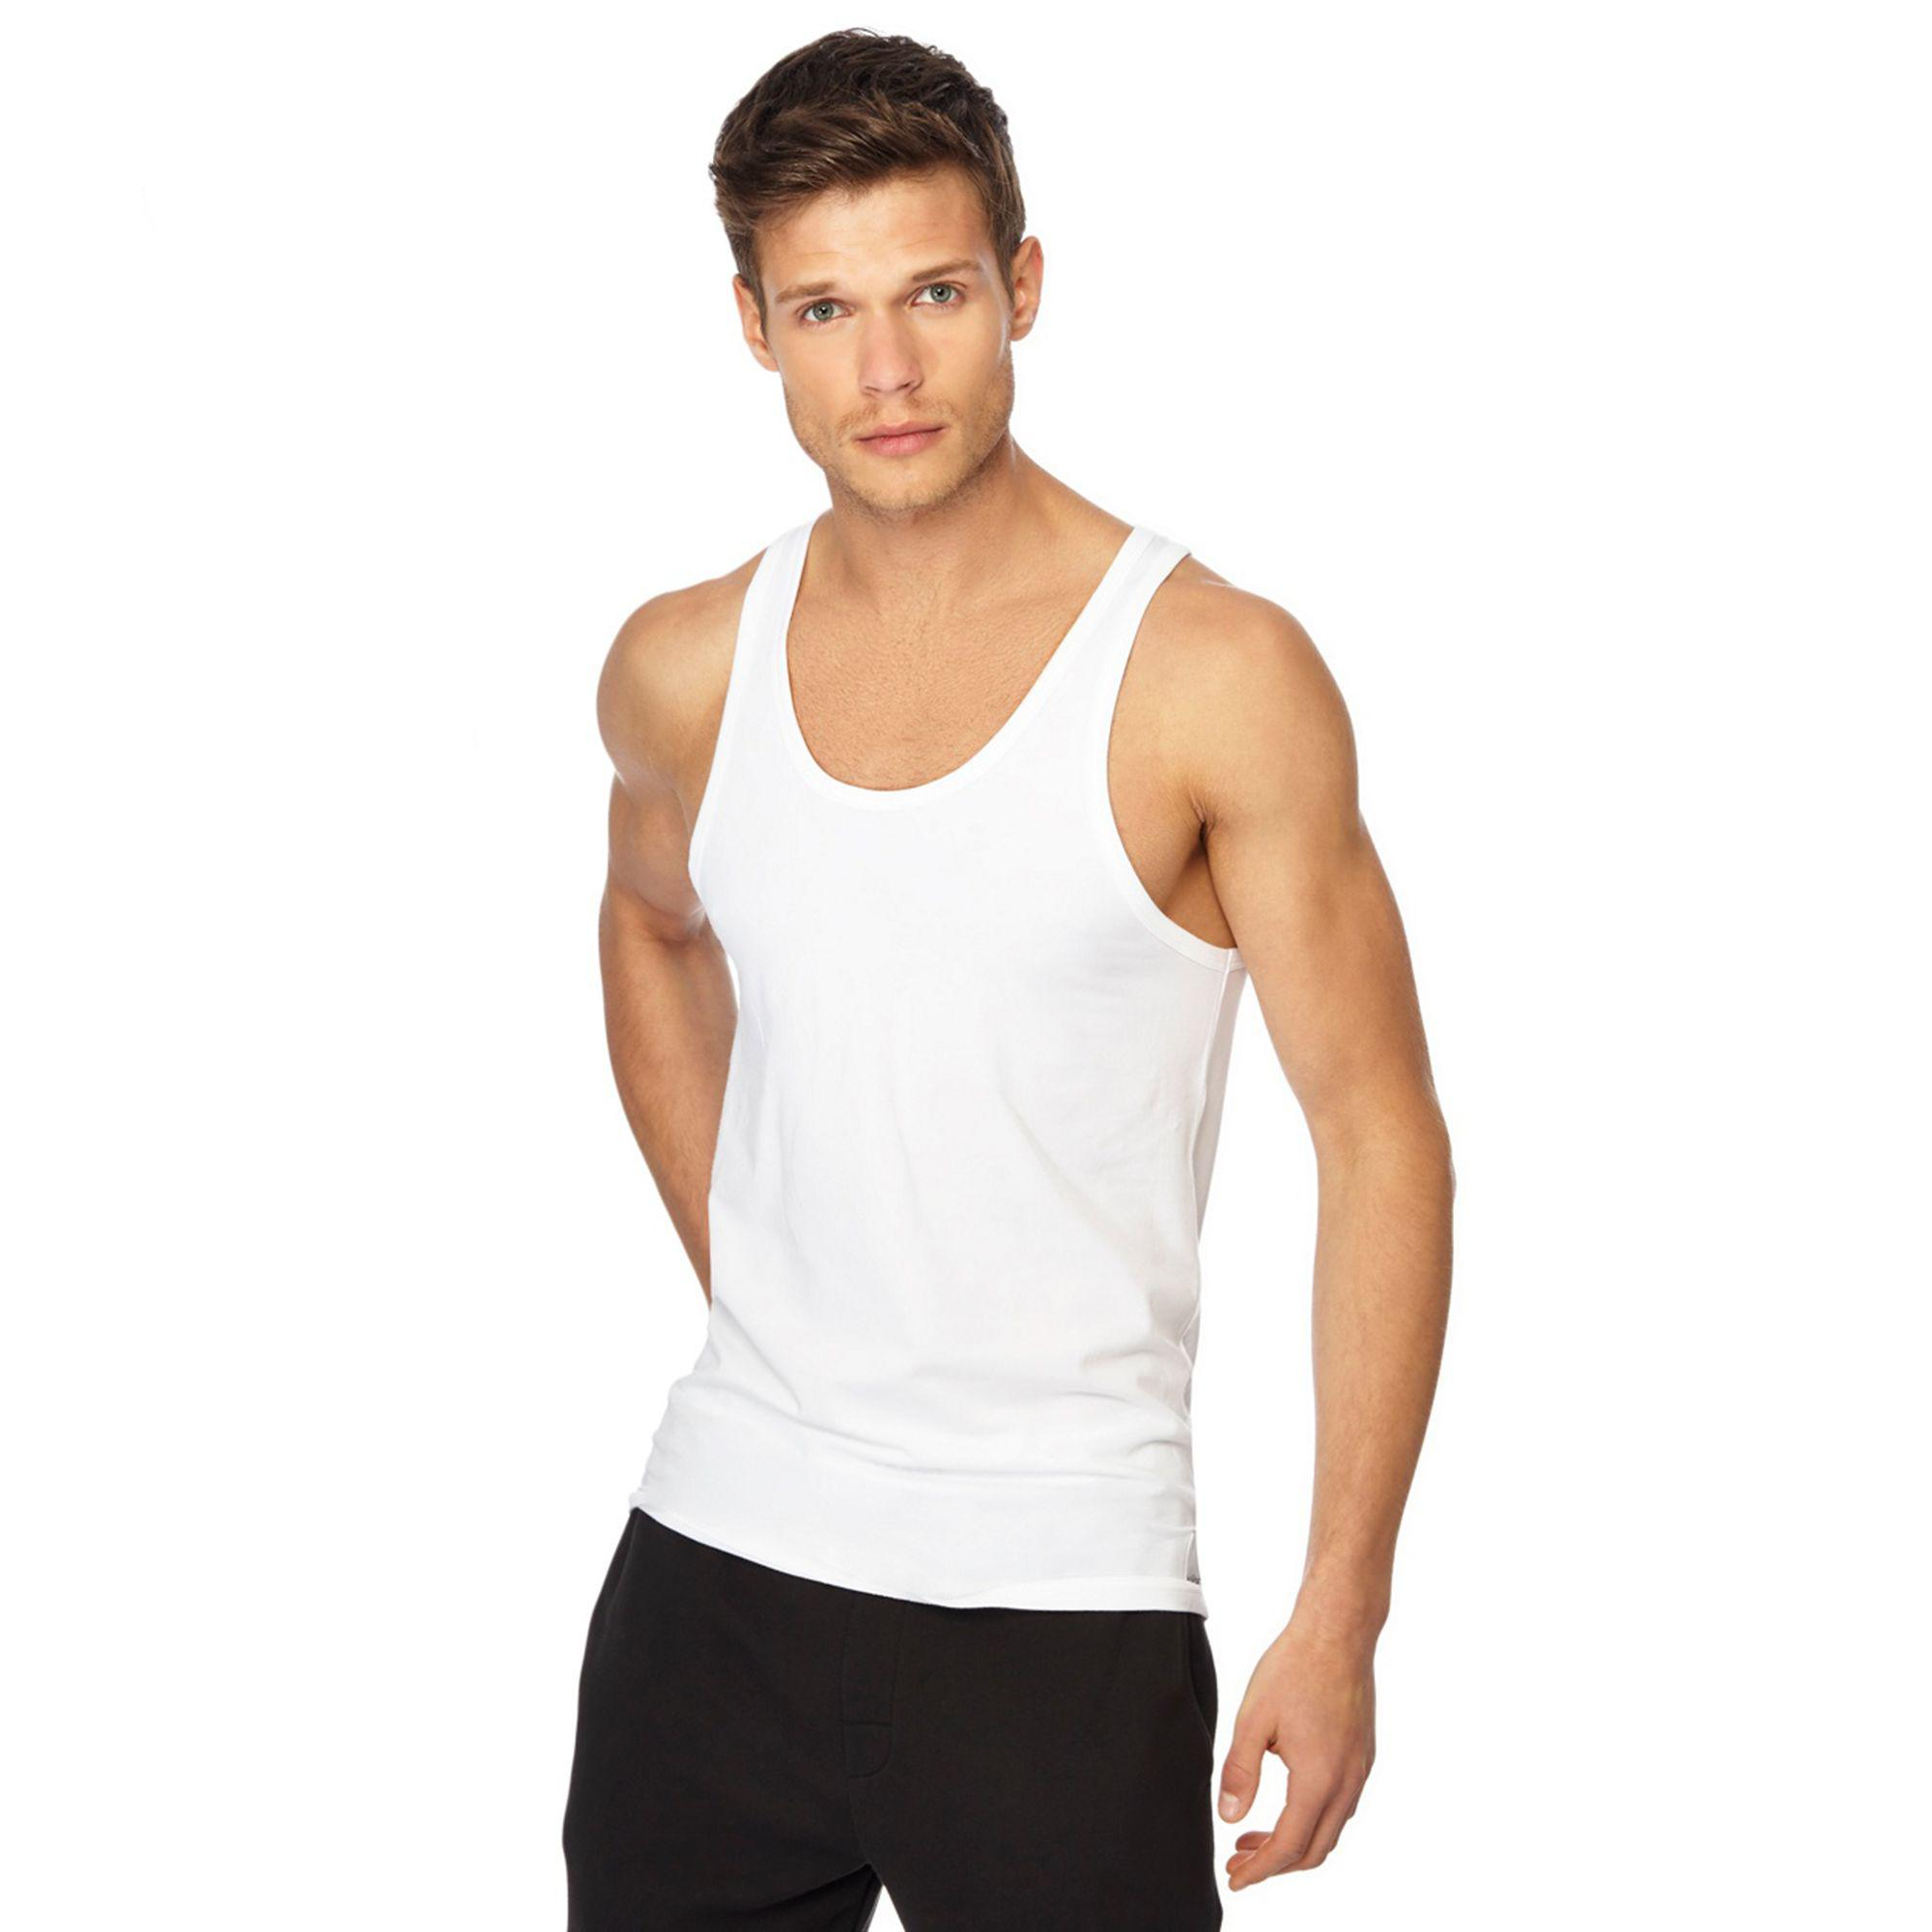 ee8dfb6d2b Calvin Klein Set Of 2 White Regular Fit Tank Tops in White for Men ...